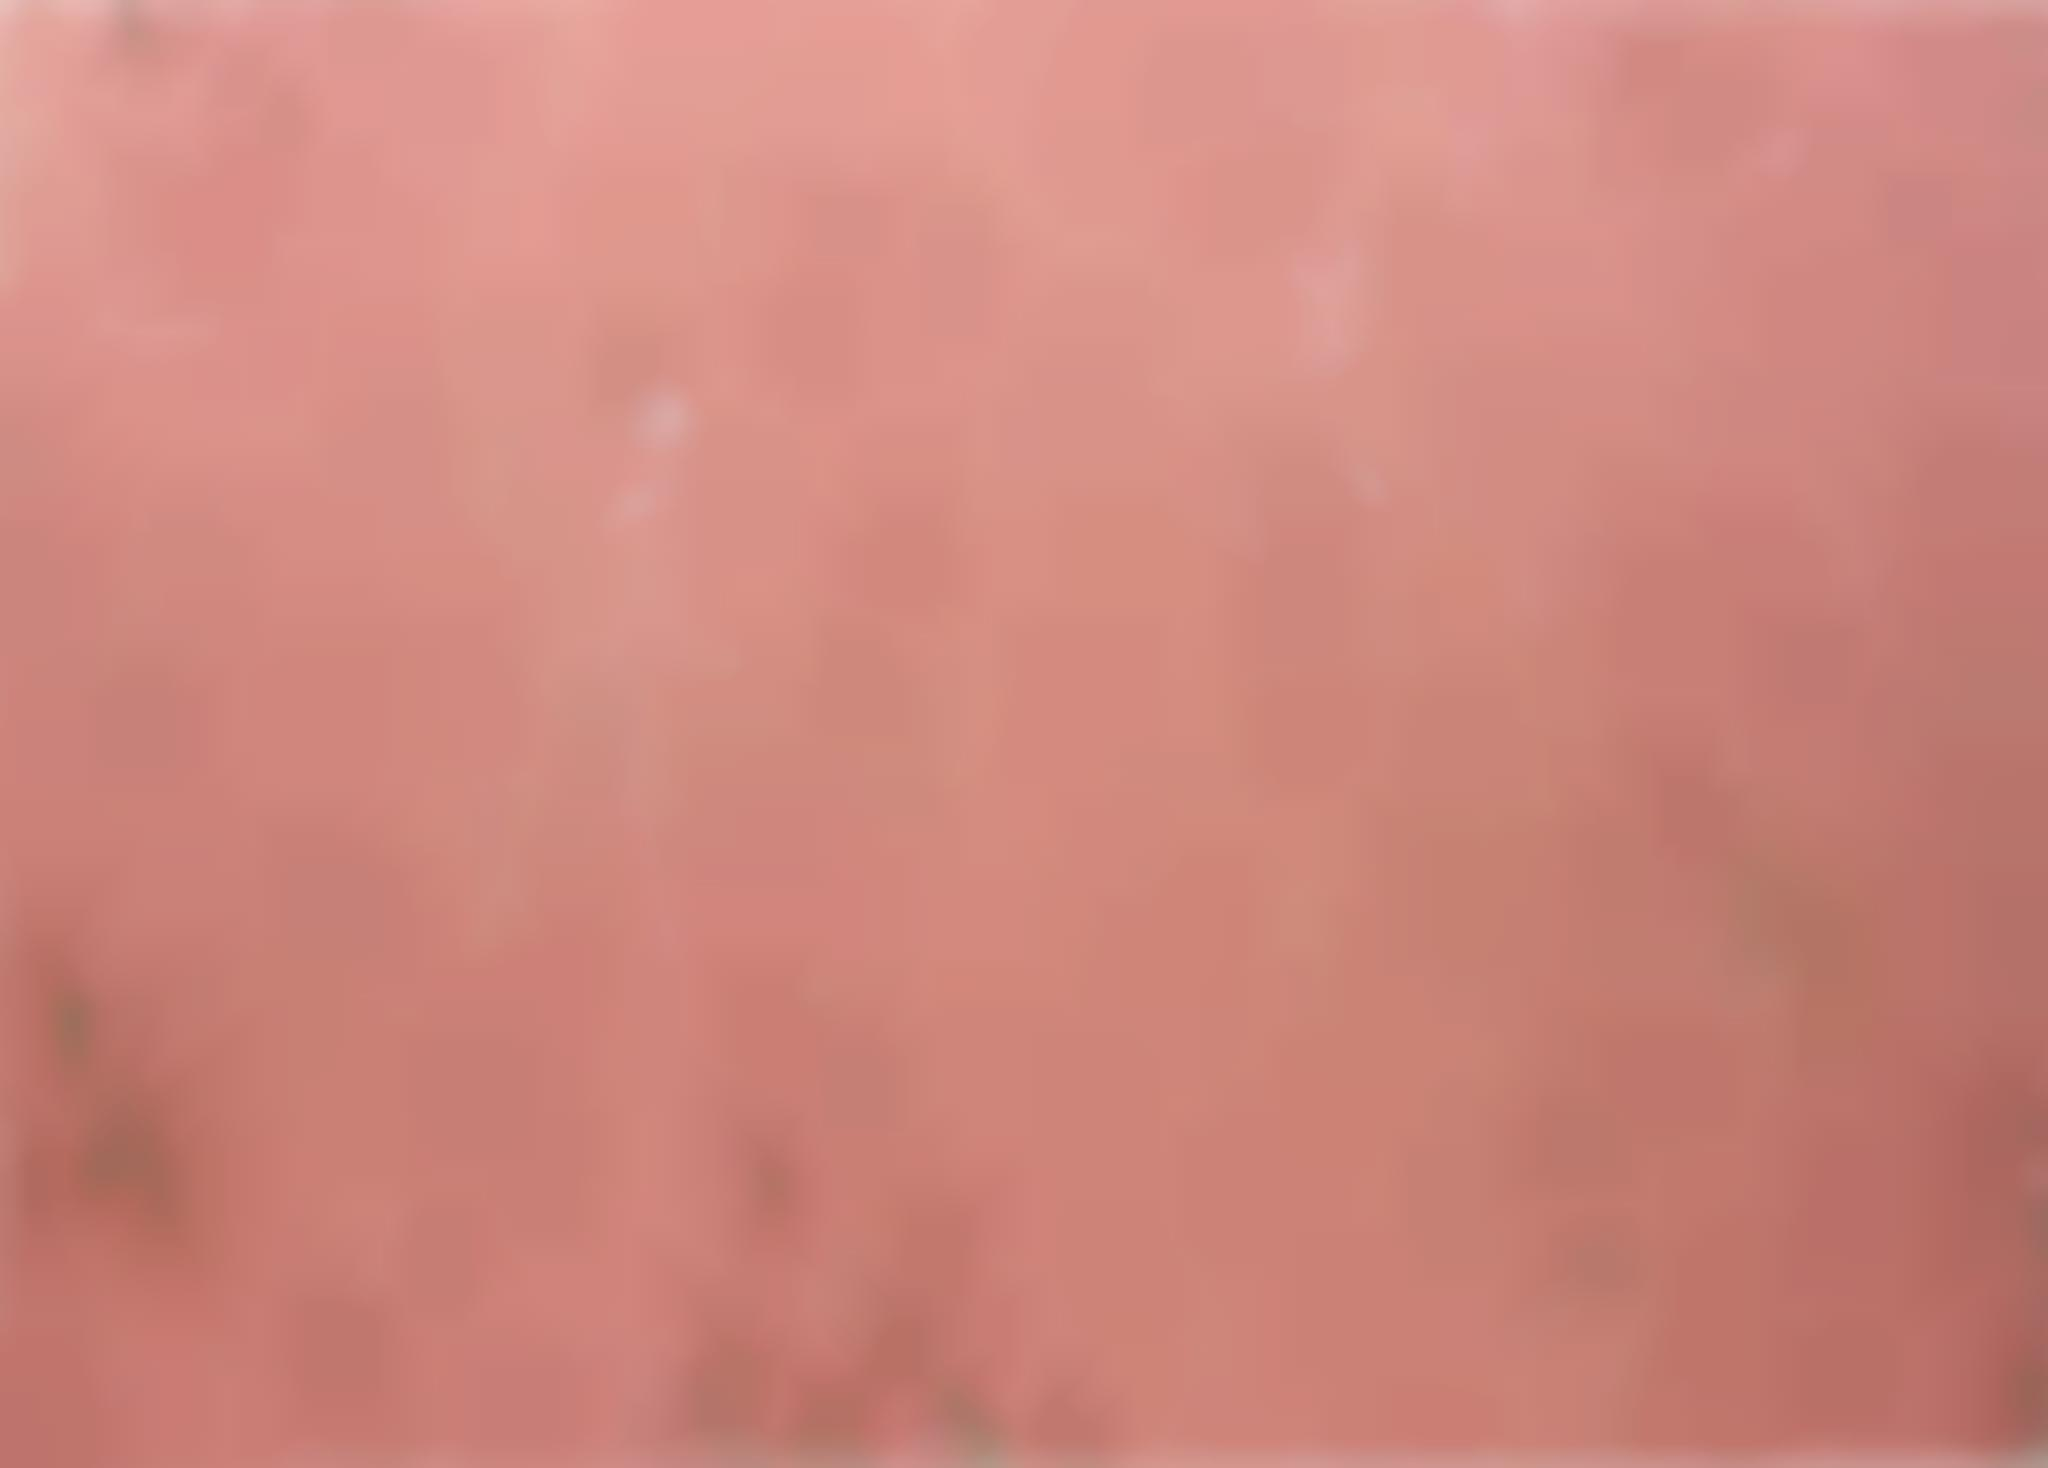 Phoebe Collings-James-Flesh Tint Painting No.4-2013